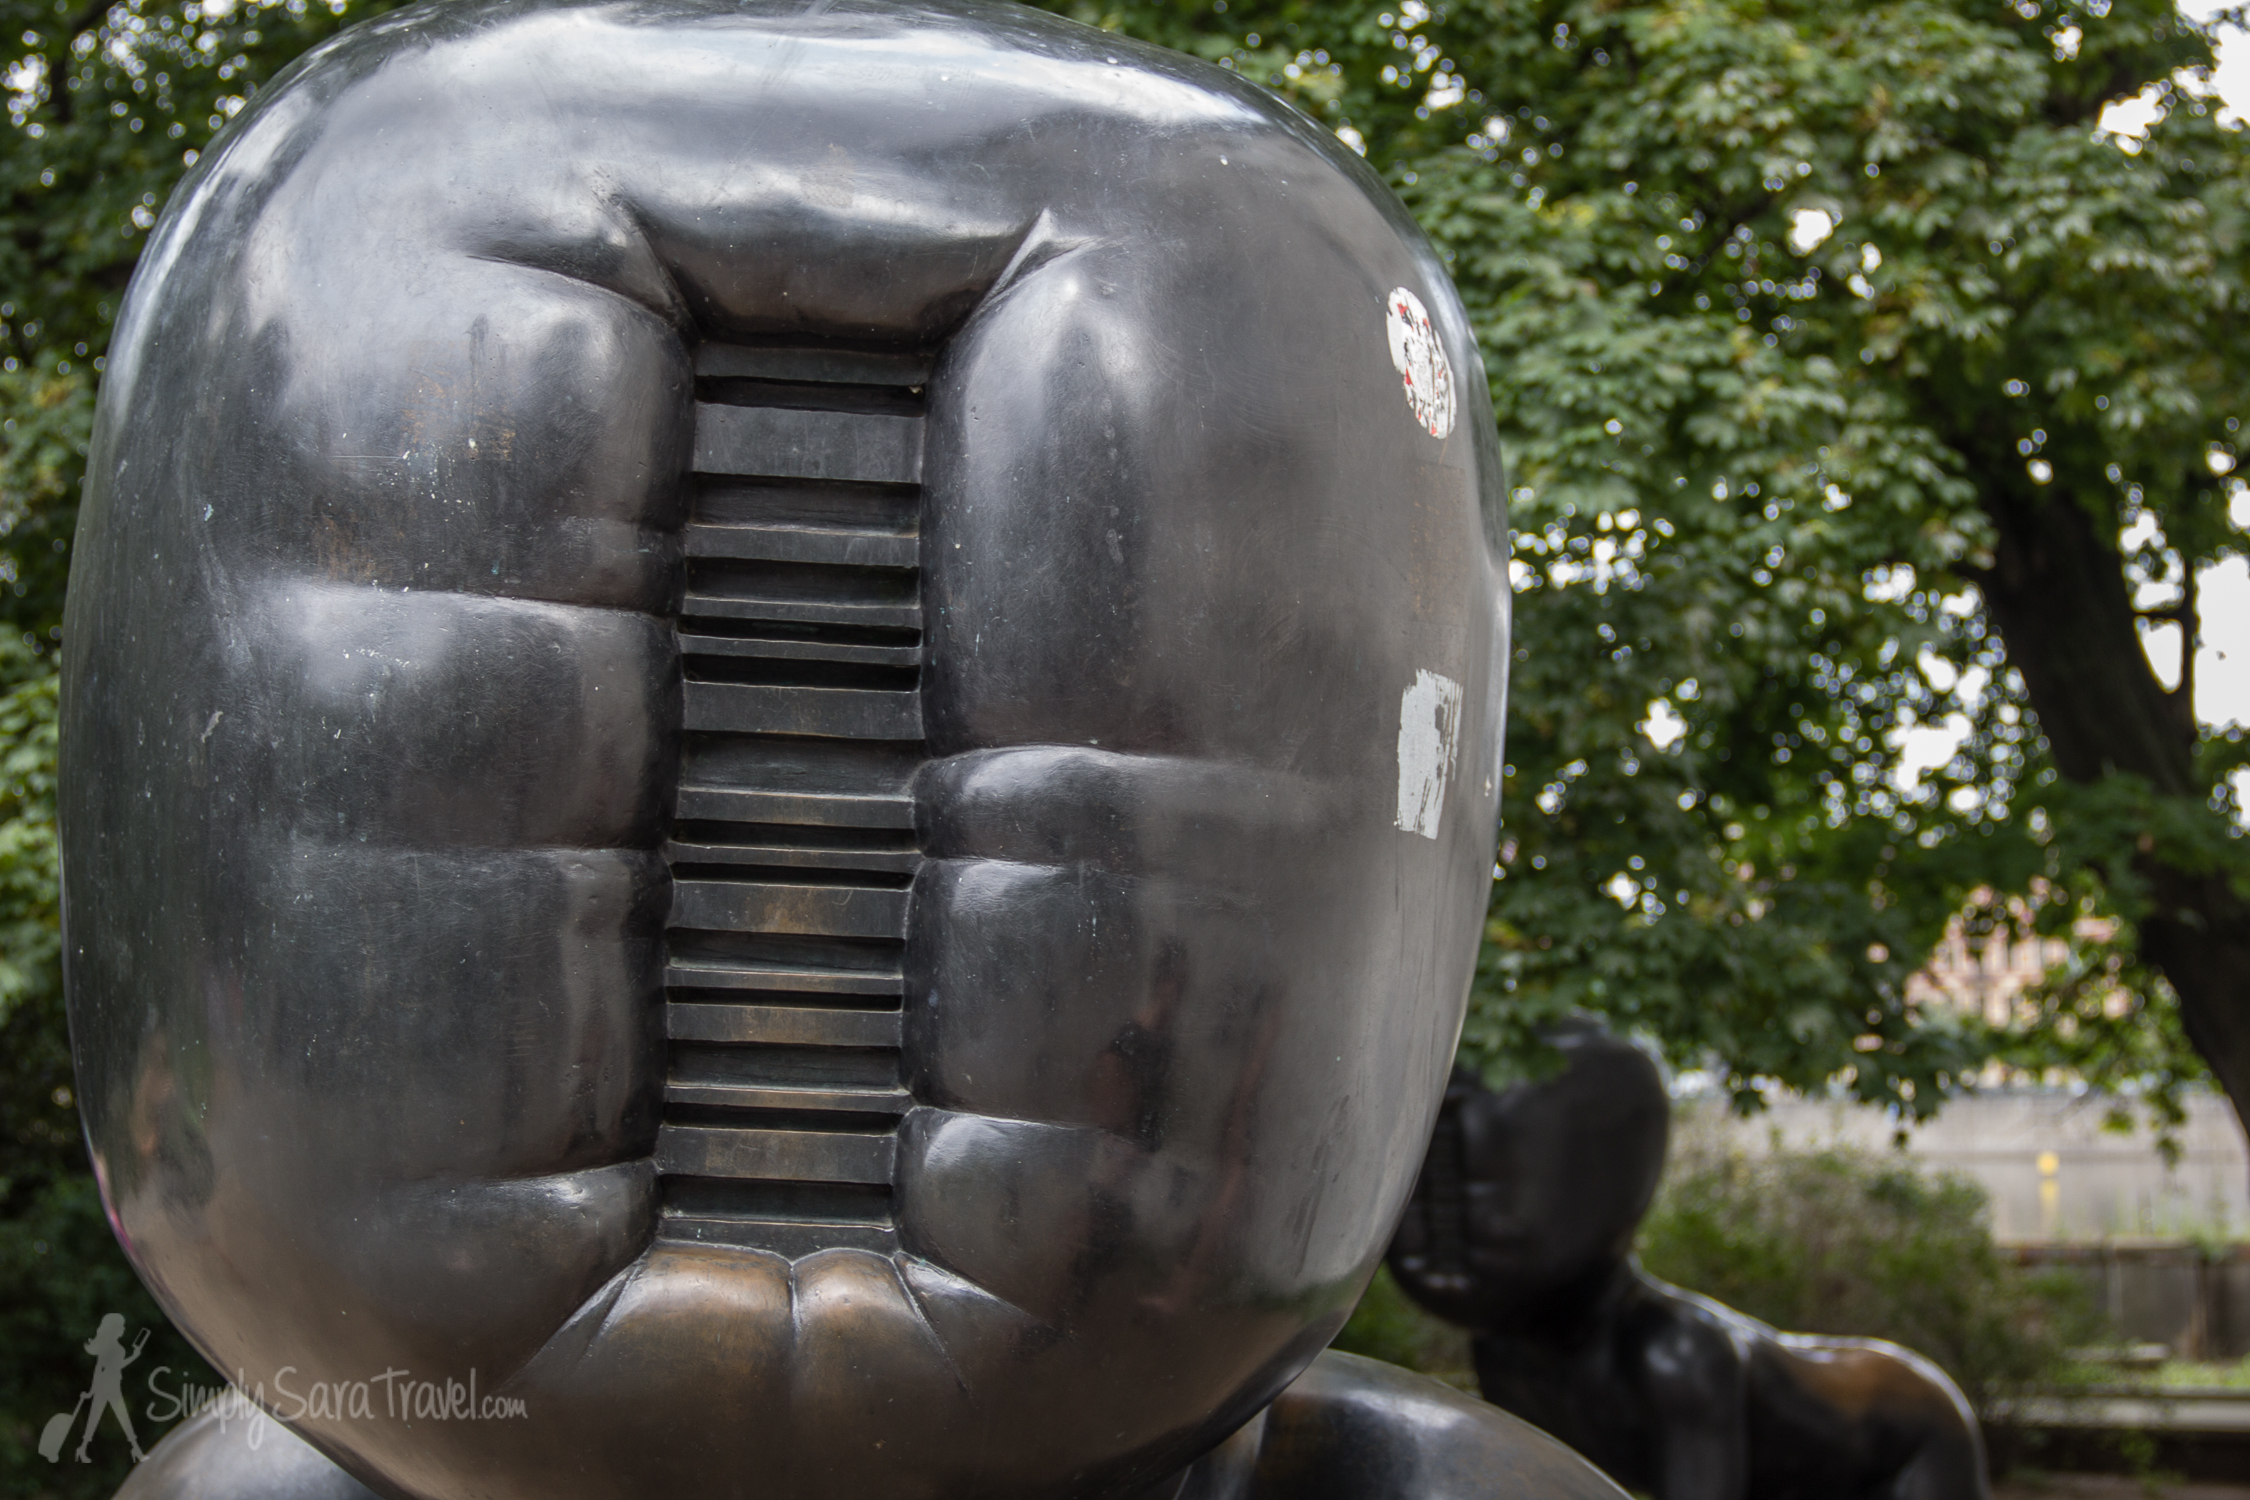 Is it just me or does the head remind you of a boxing glove?